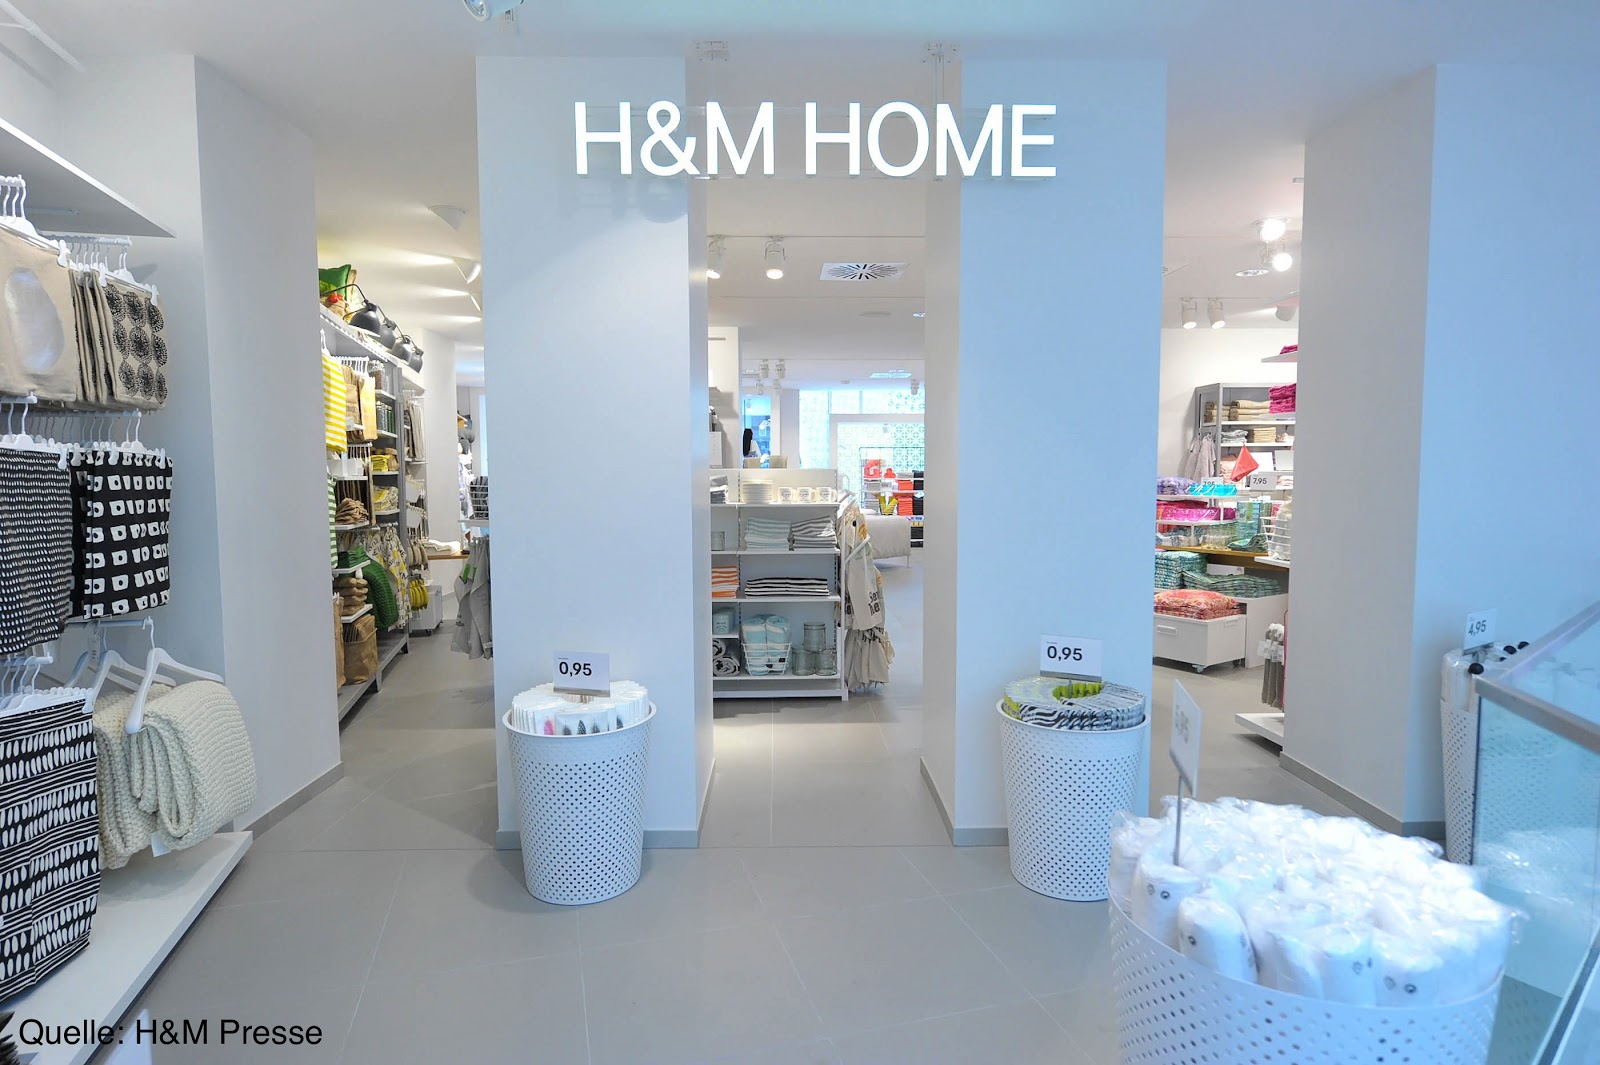 Home Extra Wien